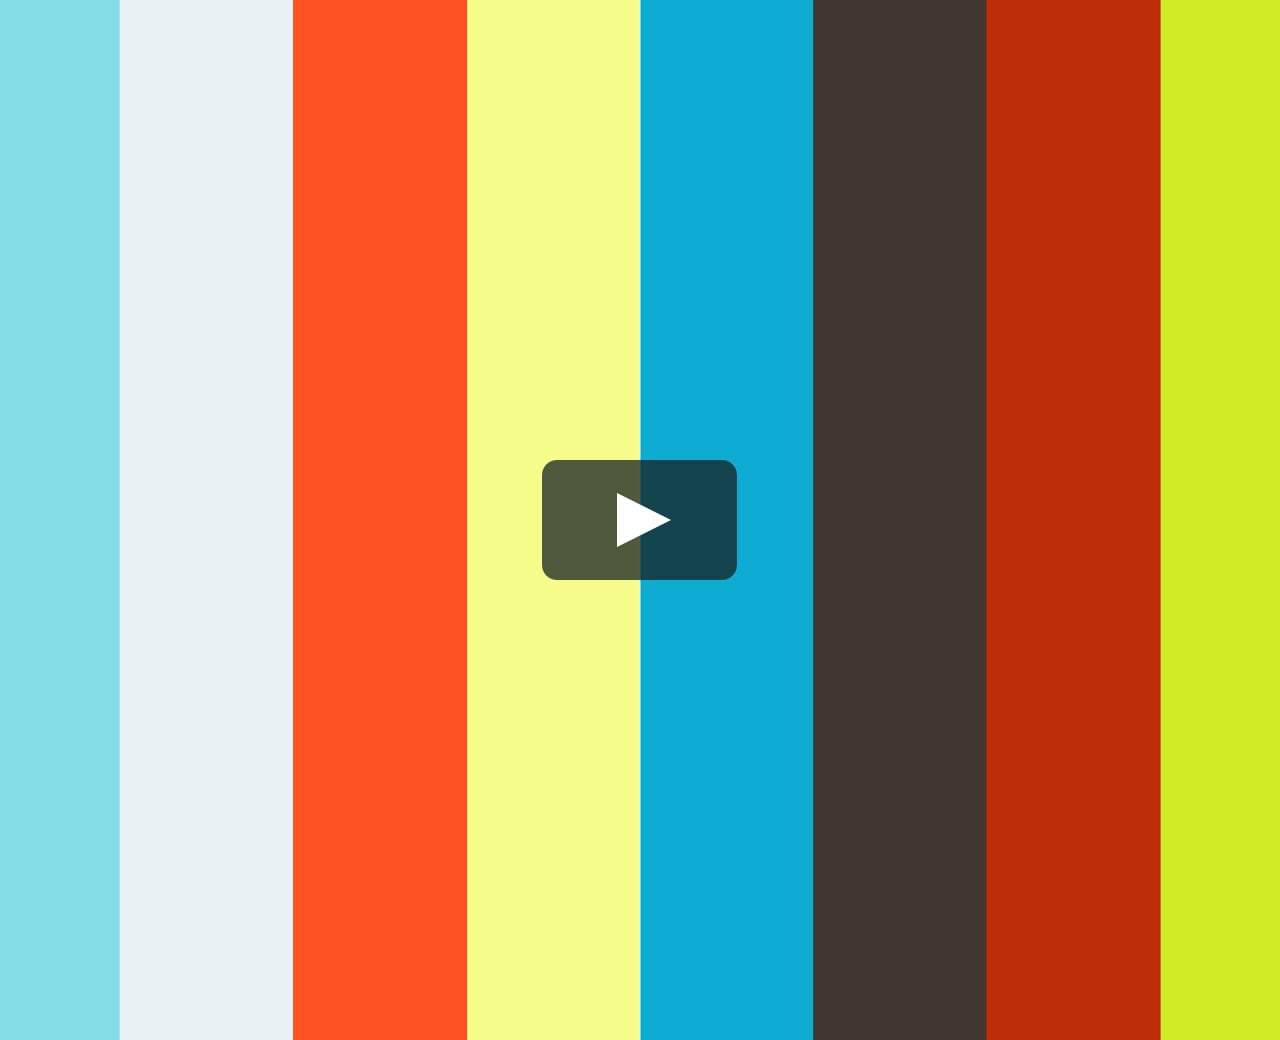 accounting homework help online tutors for accounting homework accounting homework help online tutors for accounting homework accounting coursework help on